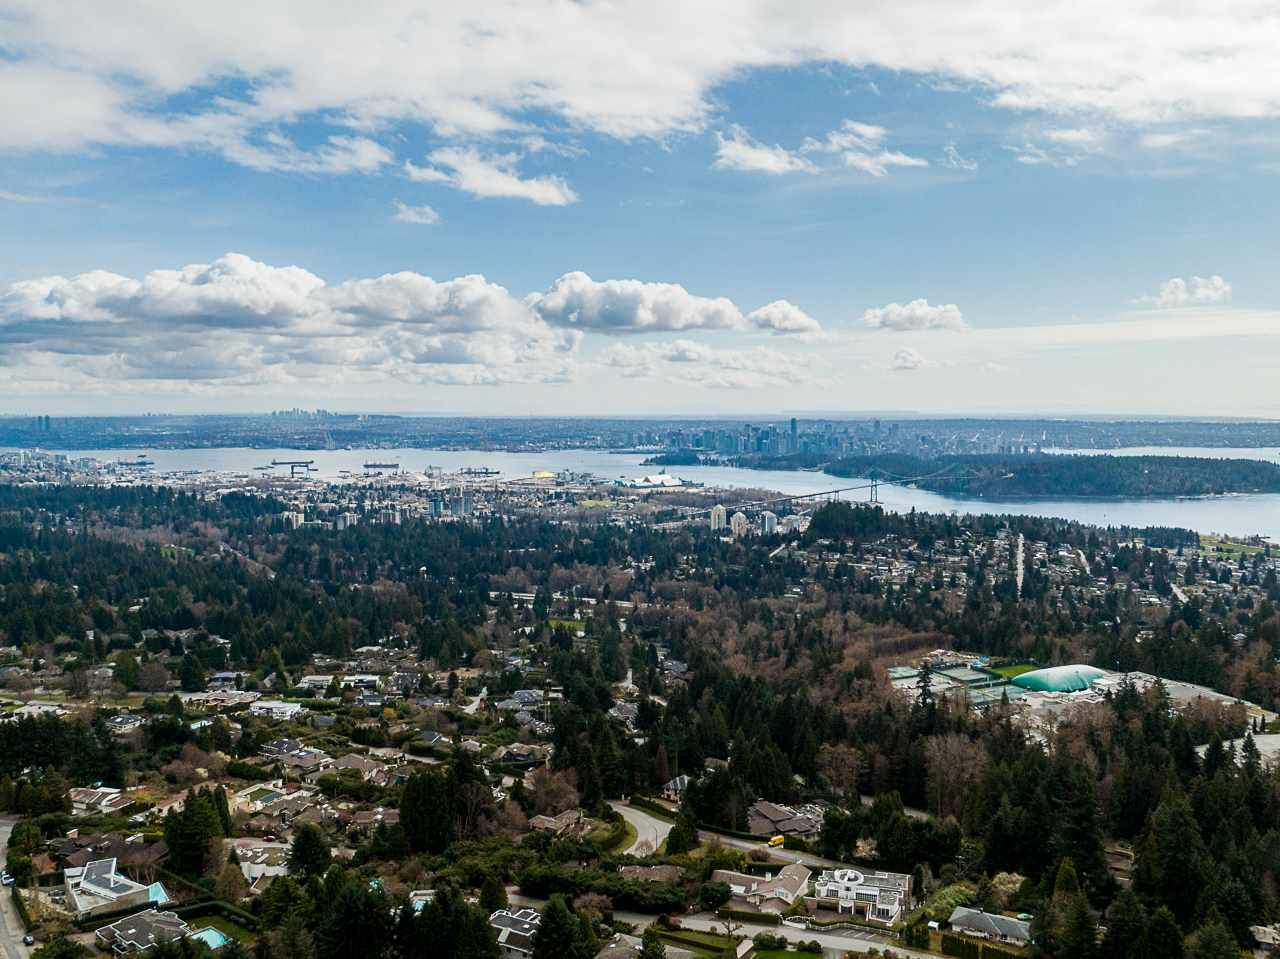 Main Photo: 950 KING GEORGES Way in West Vancouver: British Properties House for sale : MLS®# R2557567